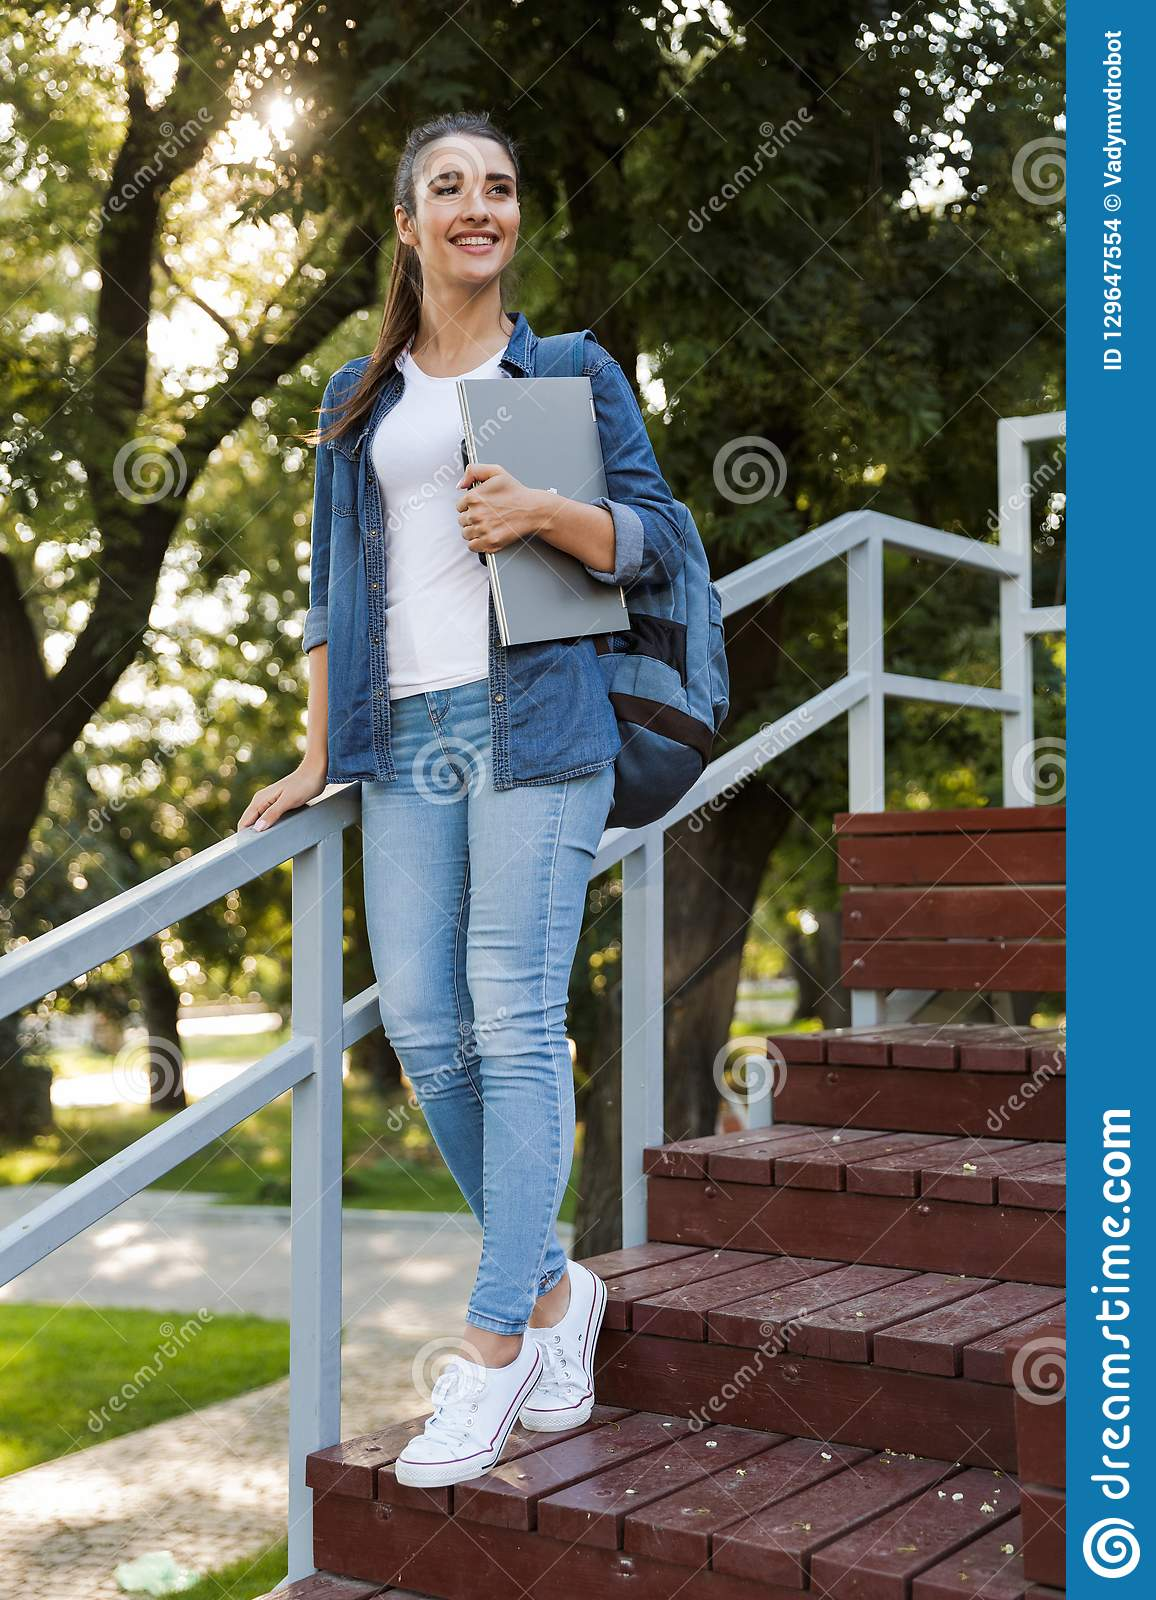 Young caucasian woman standing outdoors holding laptop computer.